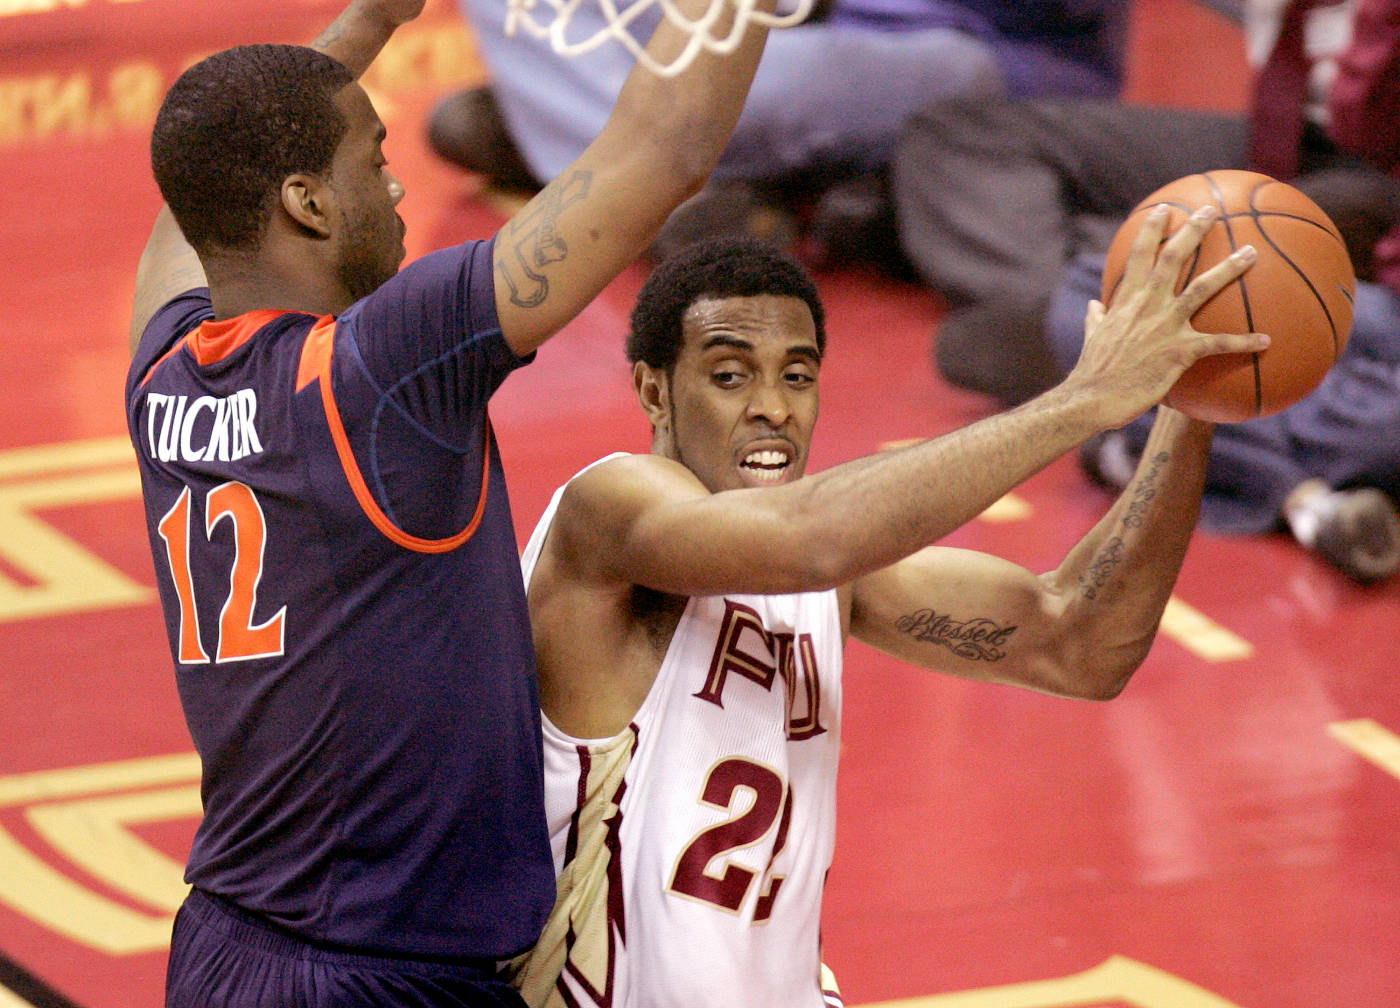 Florida State's Derwin Kitchen, right, attempts to pass around Virginia's Jamil Tucker in the first half. (AP Photo/Phil Coale)